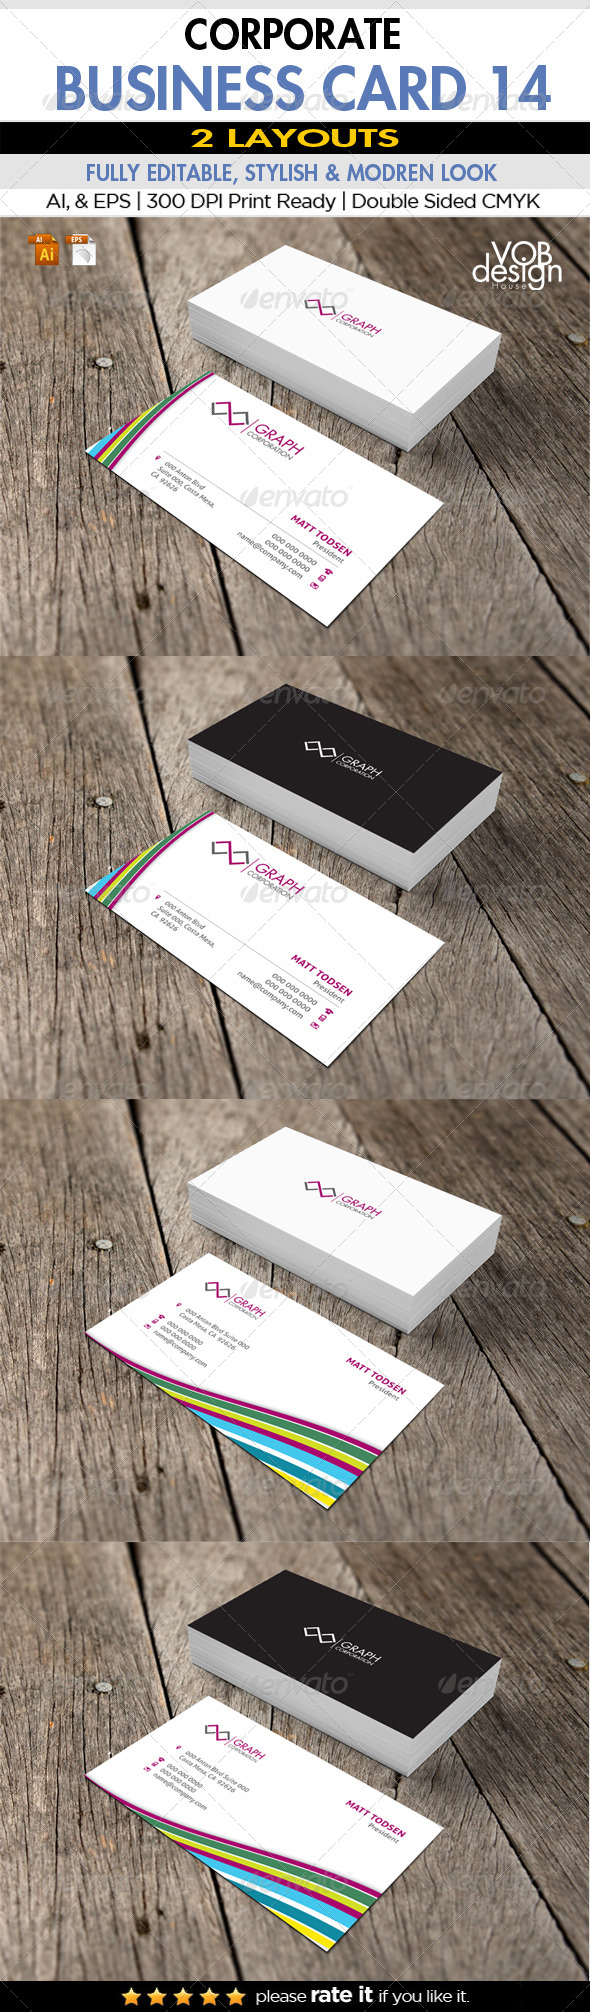 Corporate Business Card 14 - Business Cards Print Templates